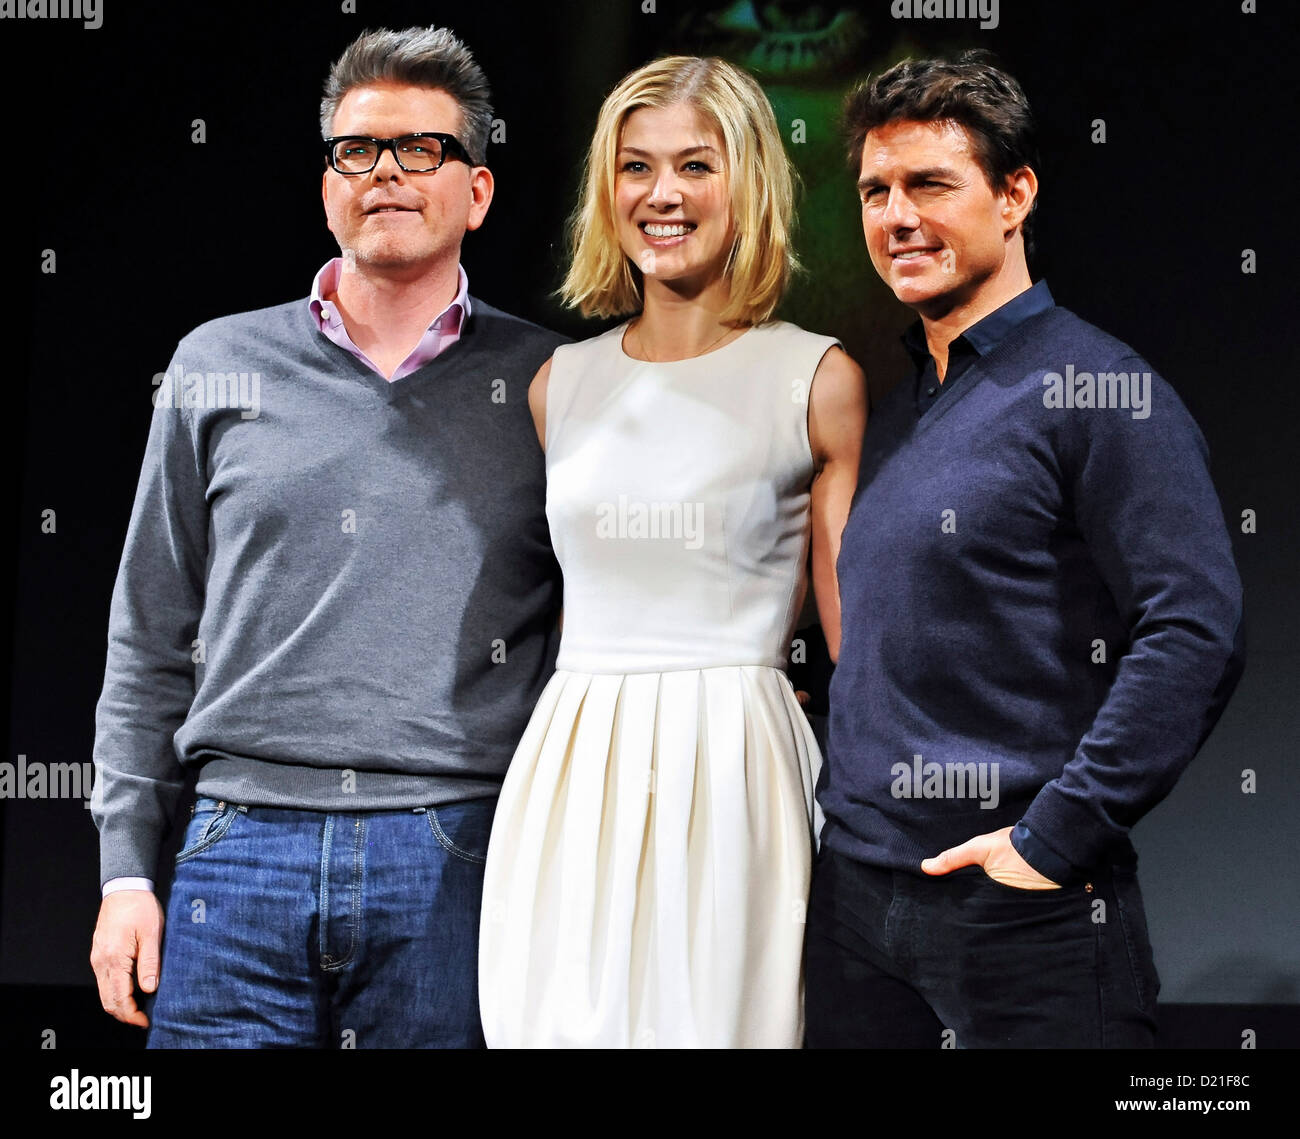 Director Christopher McQuarrie, actress Rosamund Pike and actor Tom Cruise attend the 'Jack Reacher' press - Stock Image